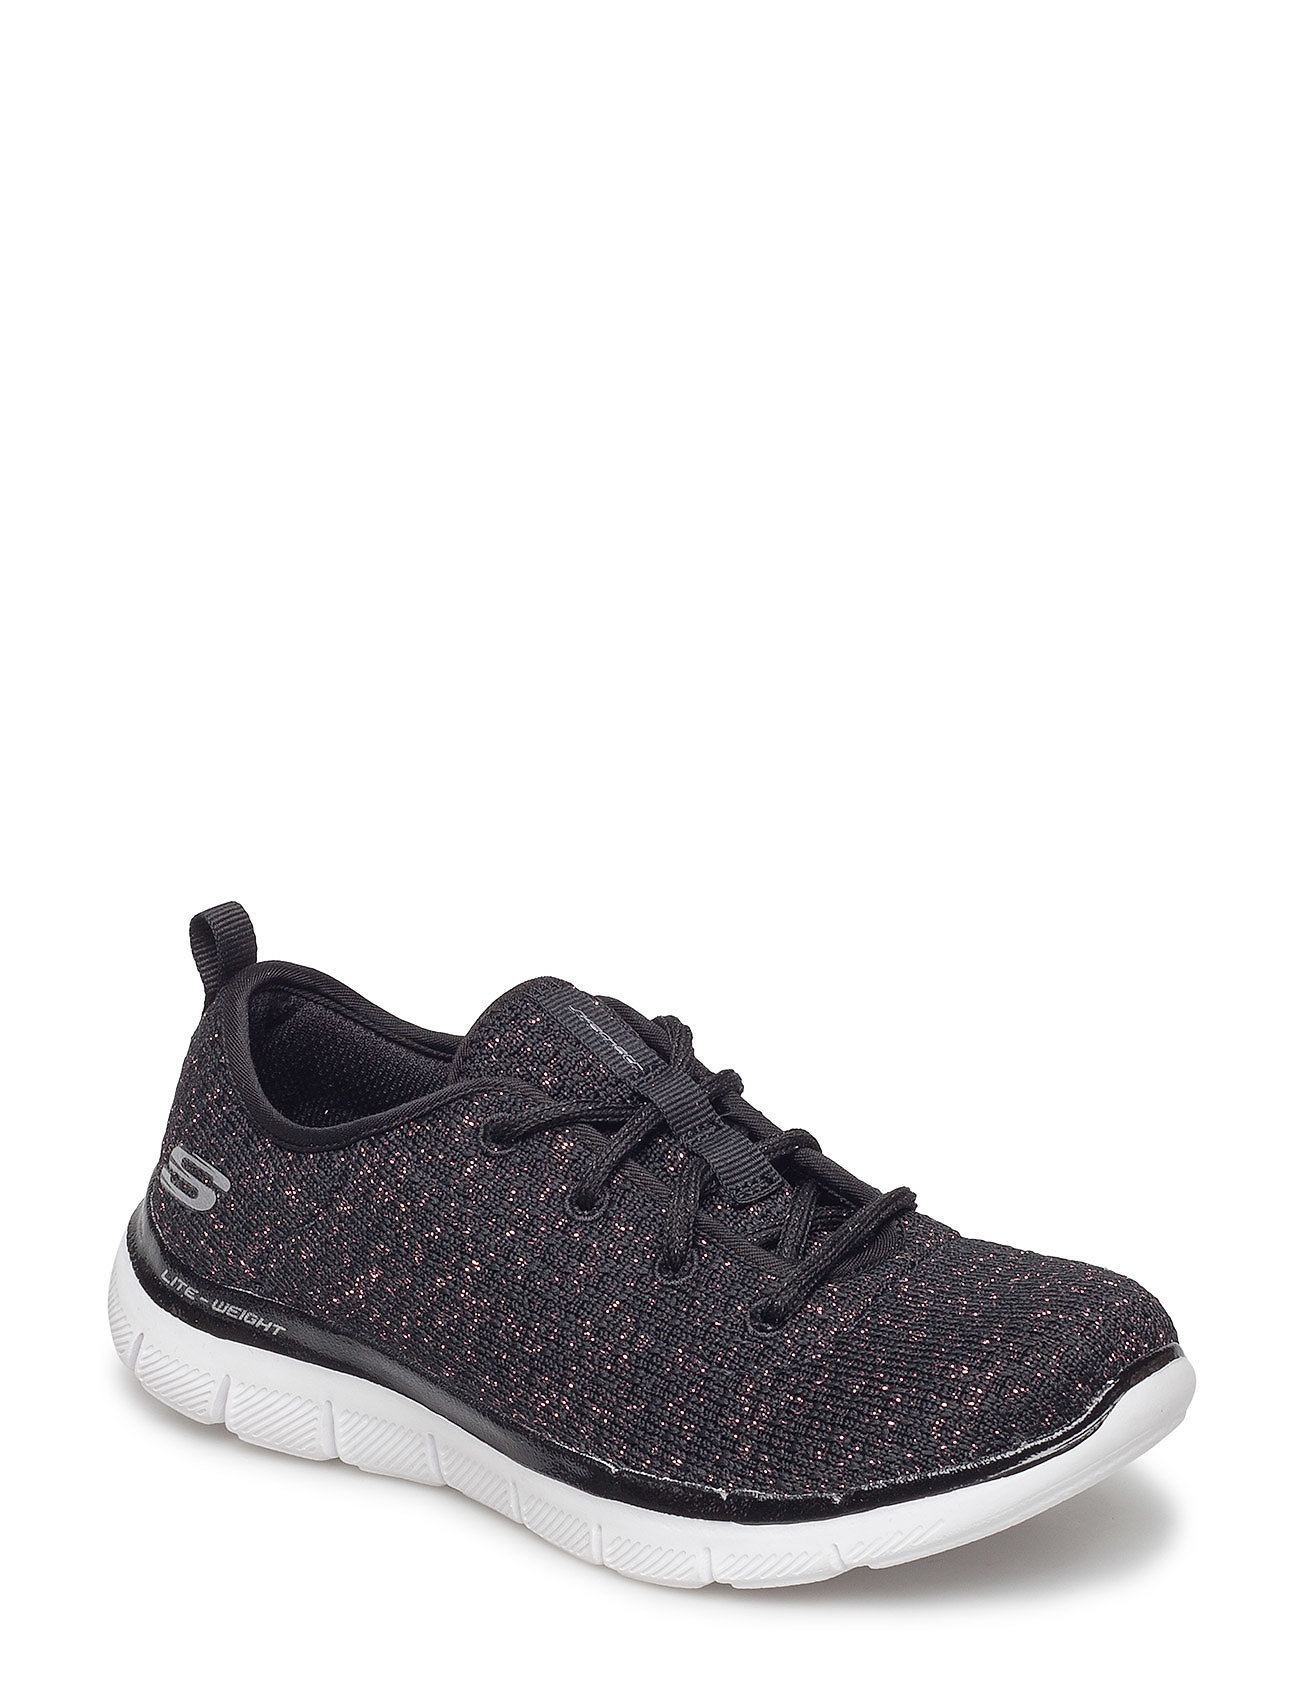 Skechers Girls Skech Appeal 2.0 - Bold Move - BKRG BLACK ROSE GOLD